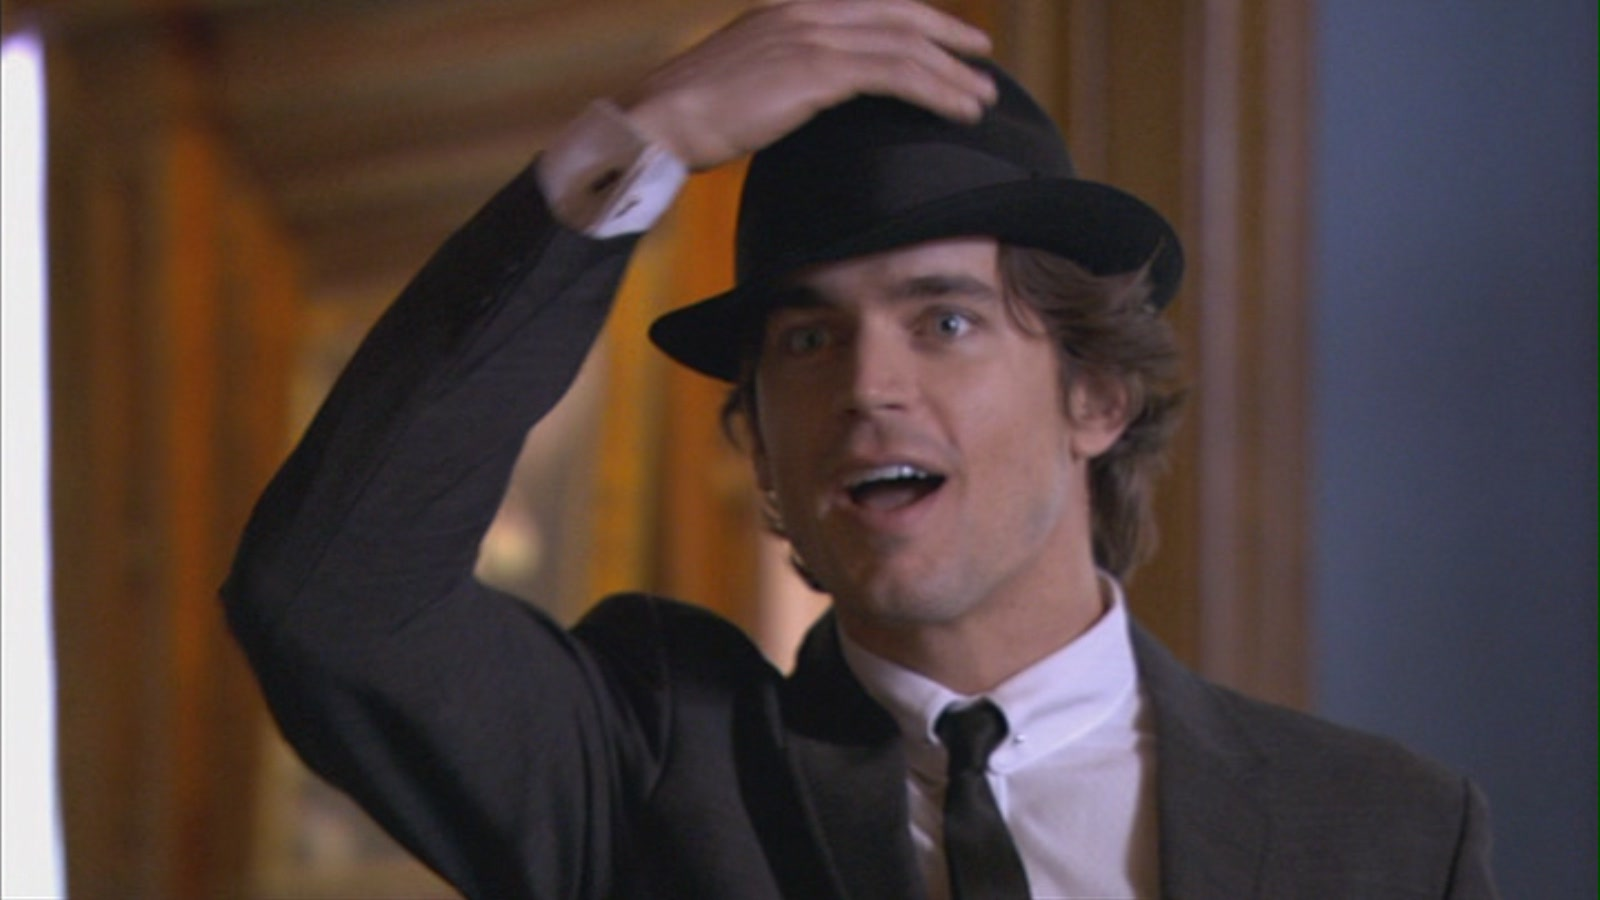 the gallery for gt matt bomer suit and hat